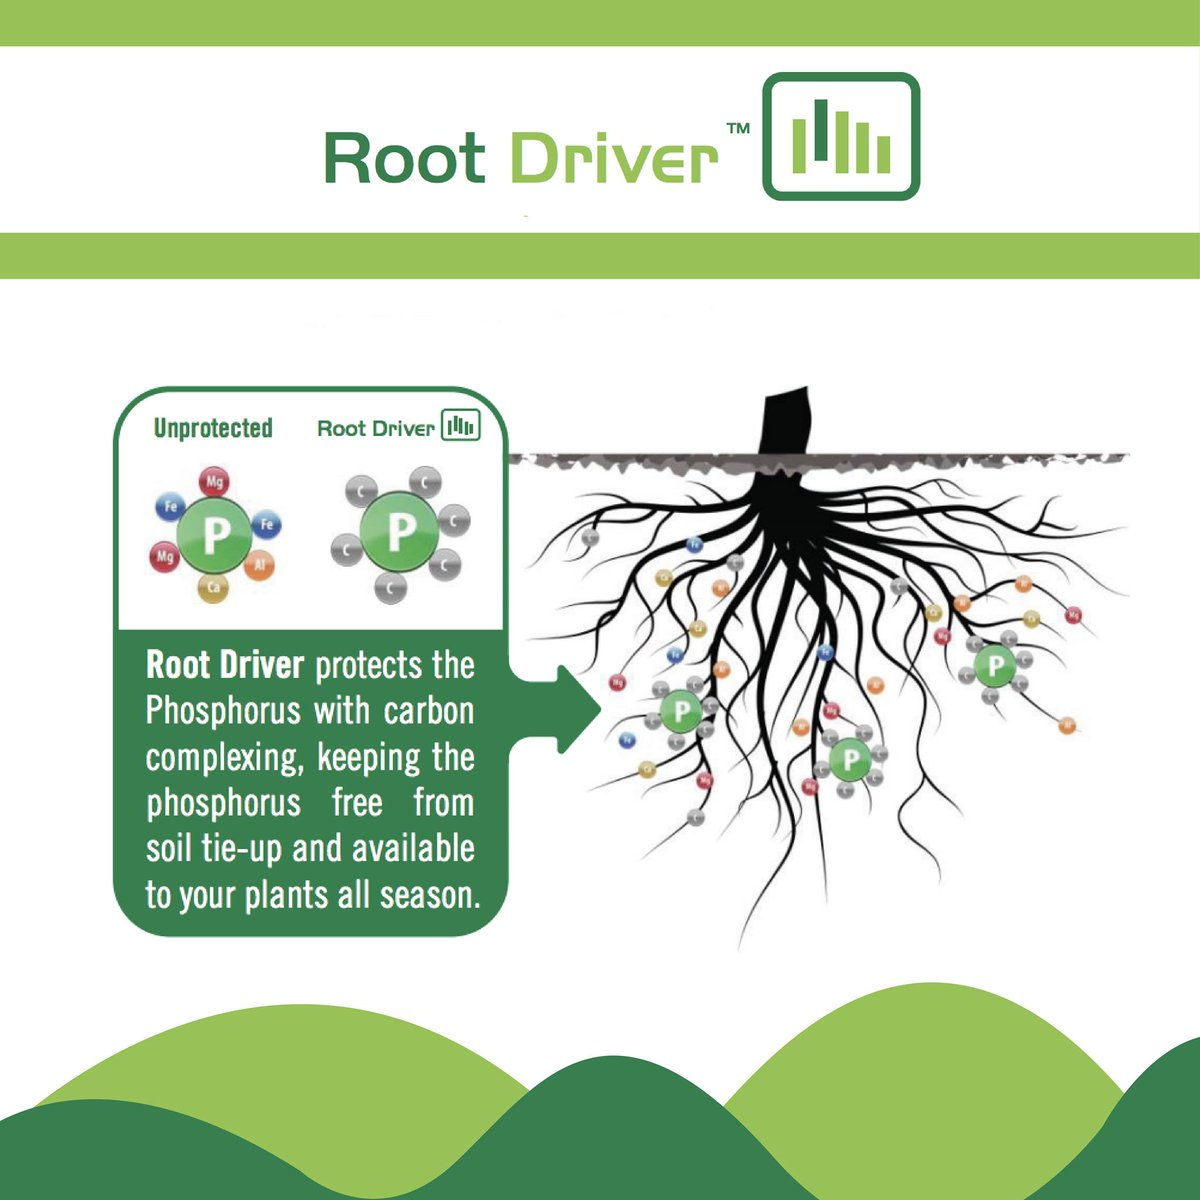 Less Root